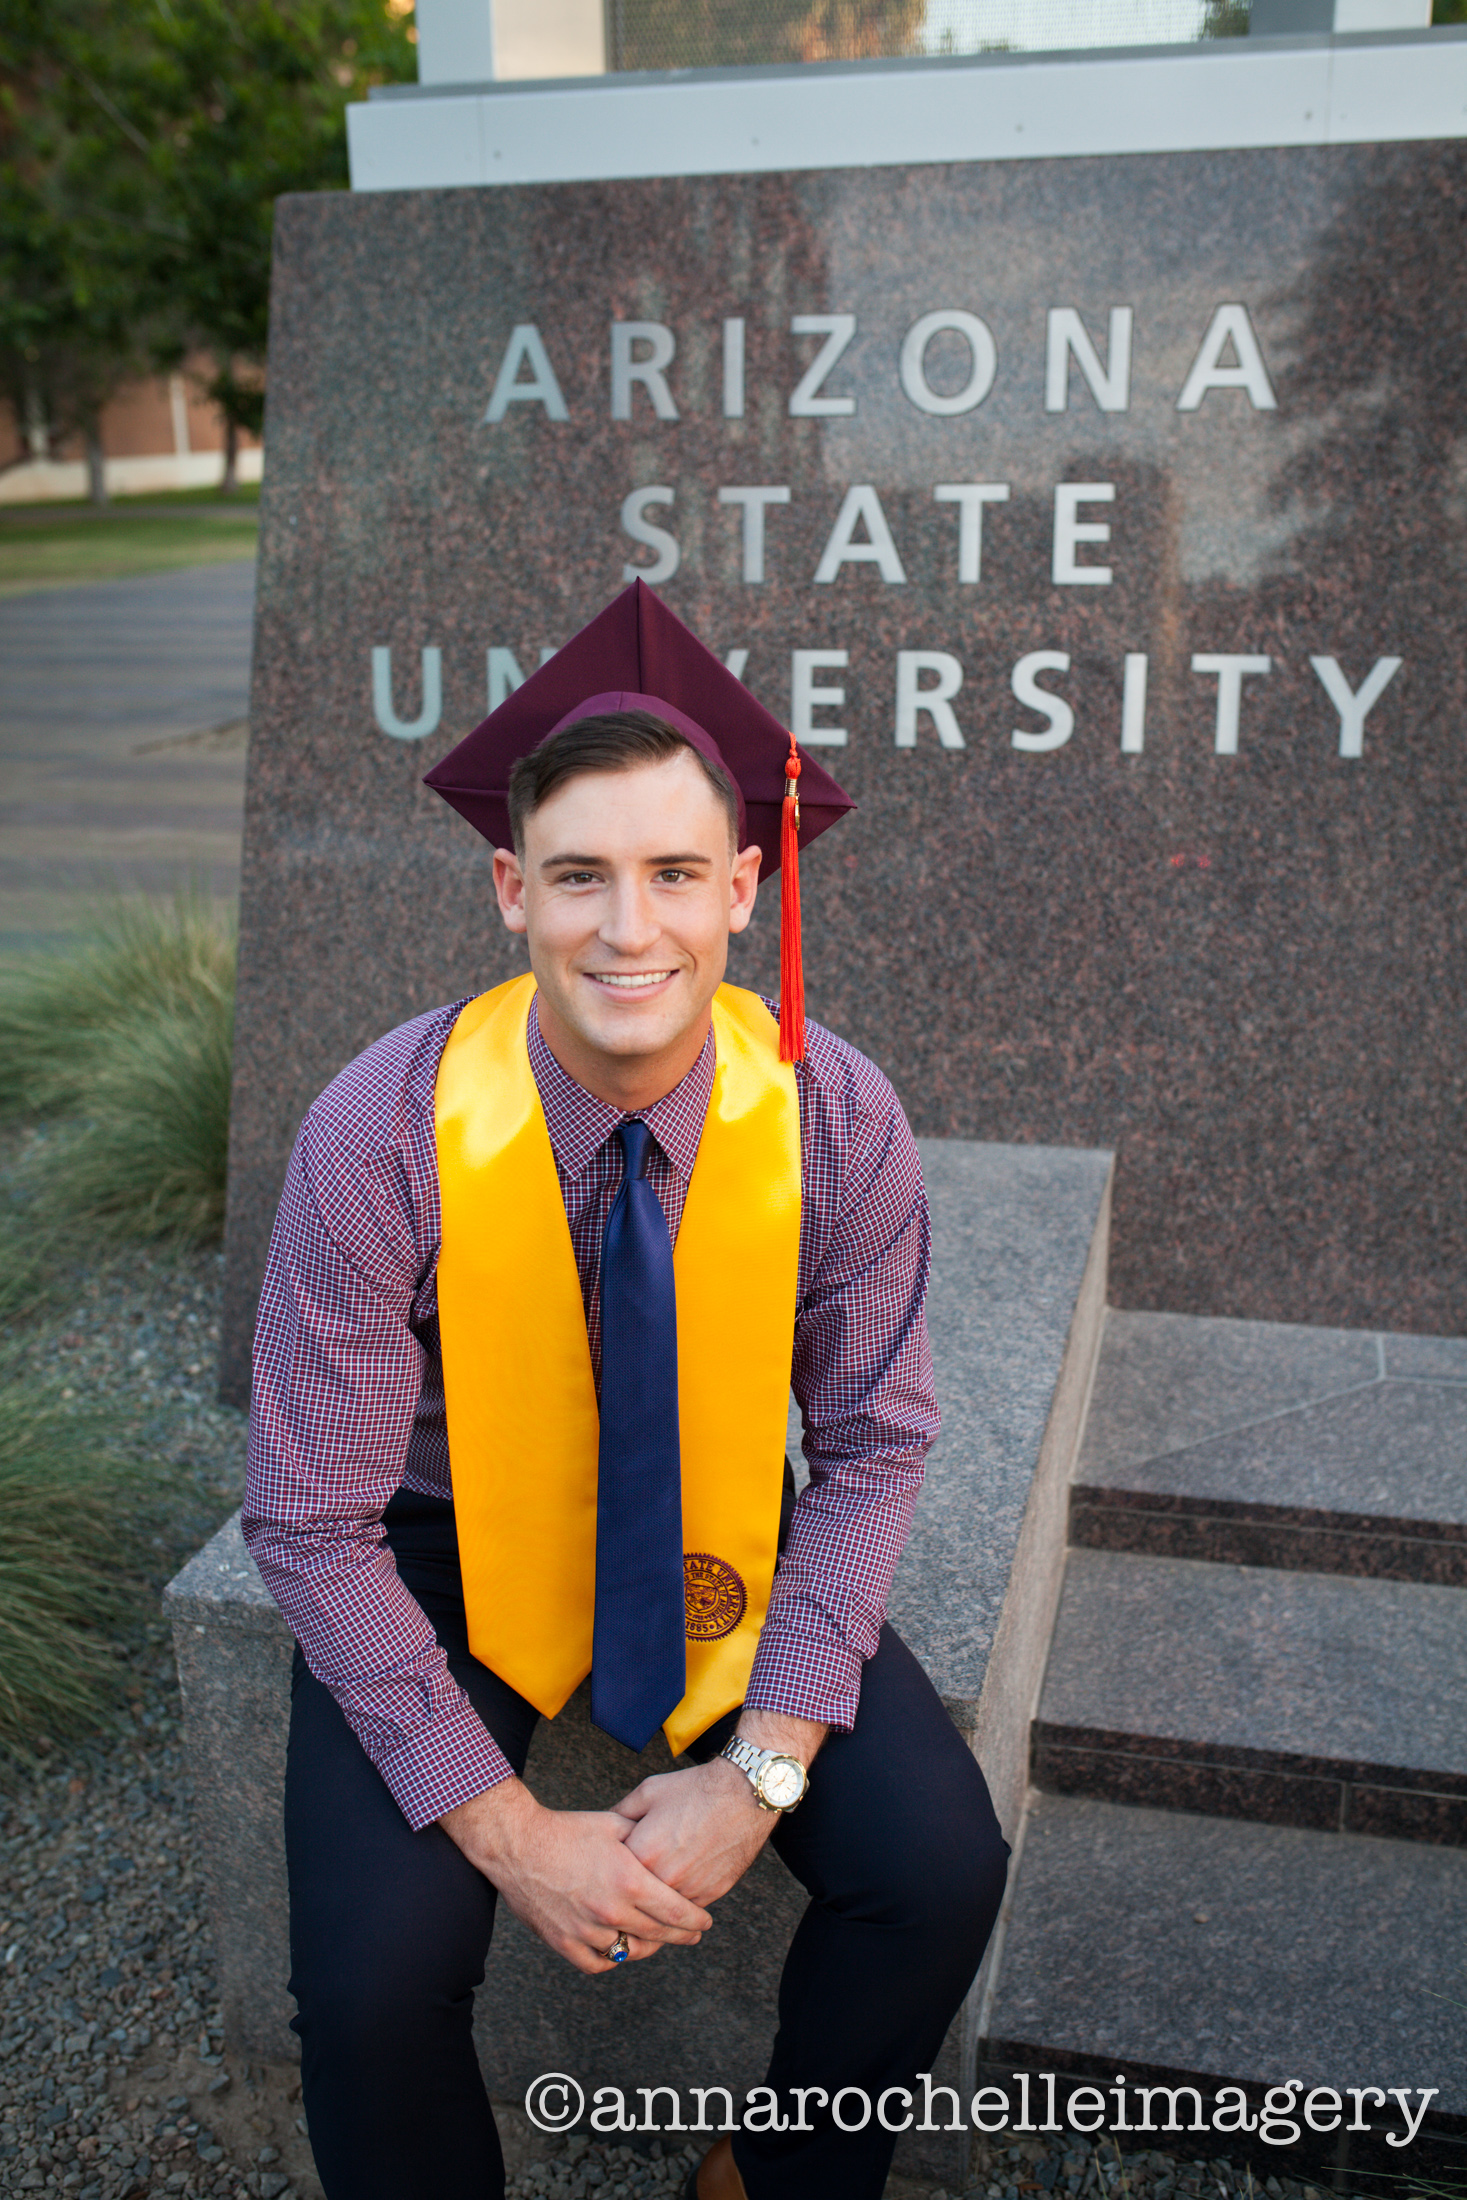 arizona-state-university-male-model-senior-photo-shoot.jpg